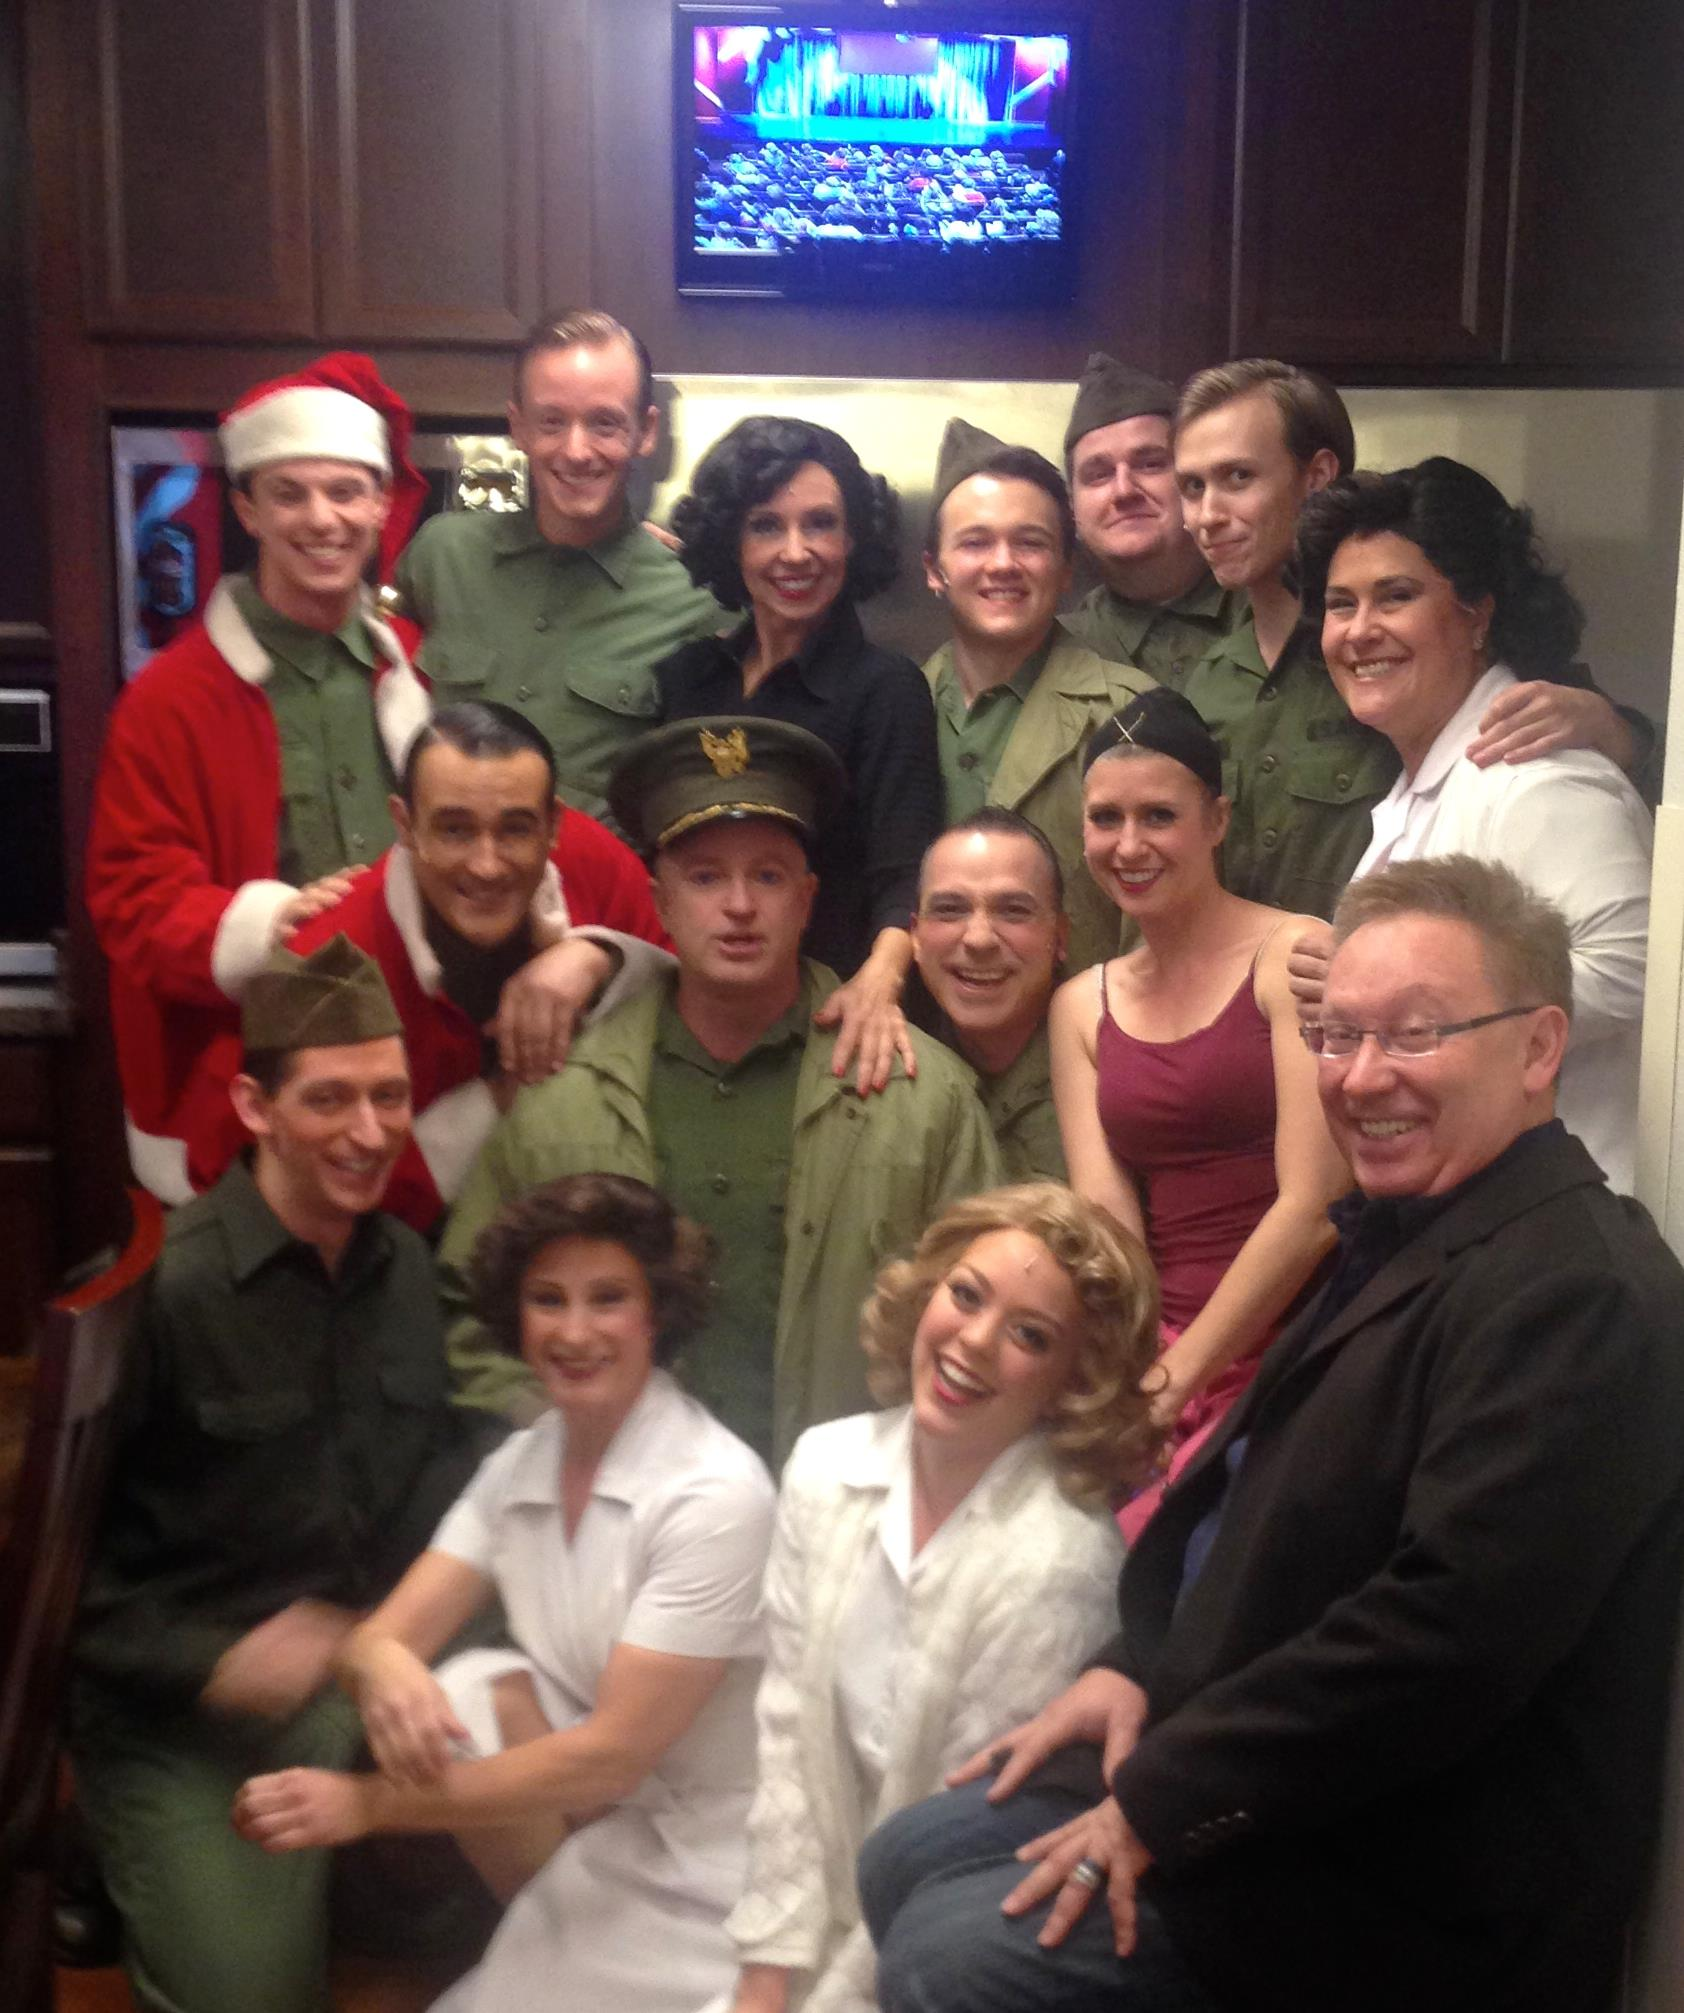 "Backstage at Phoenix Theatre's ""White Christmas."" Included in the photo are with Peter Marinaro, Jonathan Brian, Joseph Cannon, Darcy Rould- Welch, Sam Hay, Chris Eriksen, Lauren Devine, Terry Gadaire, Kenny Francoeur, Pete Good, Molly Lajoie Plutnicki, Logan Scott Mitchell, Johanna Carlisle and Michael Barnard. (Photo credit unknown)"